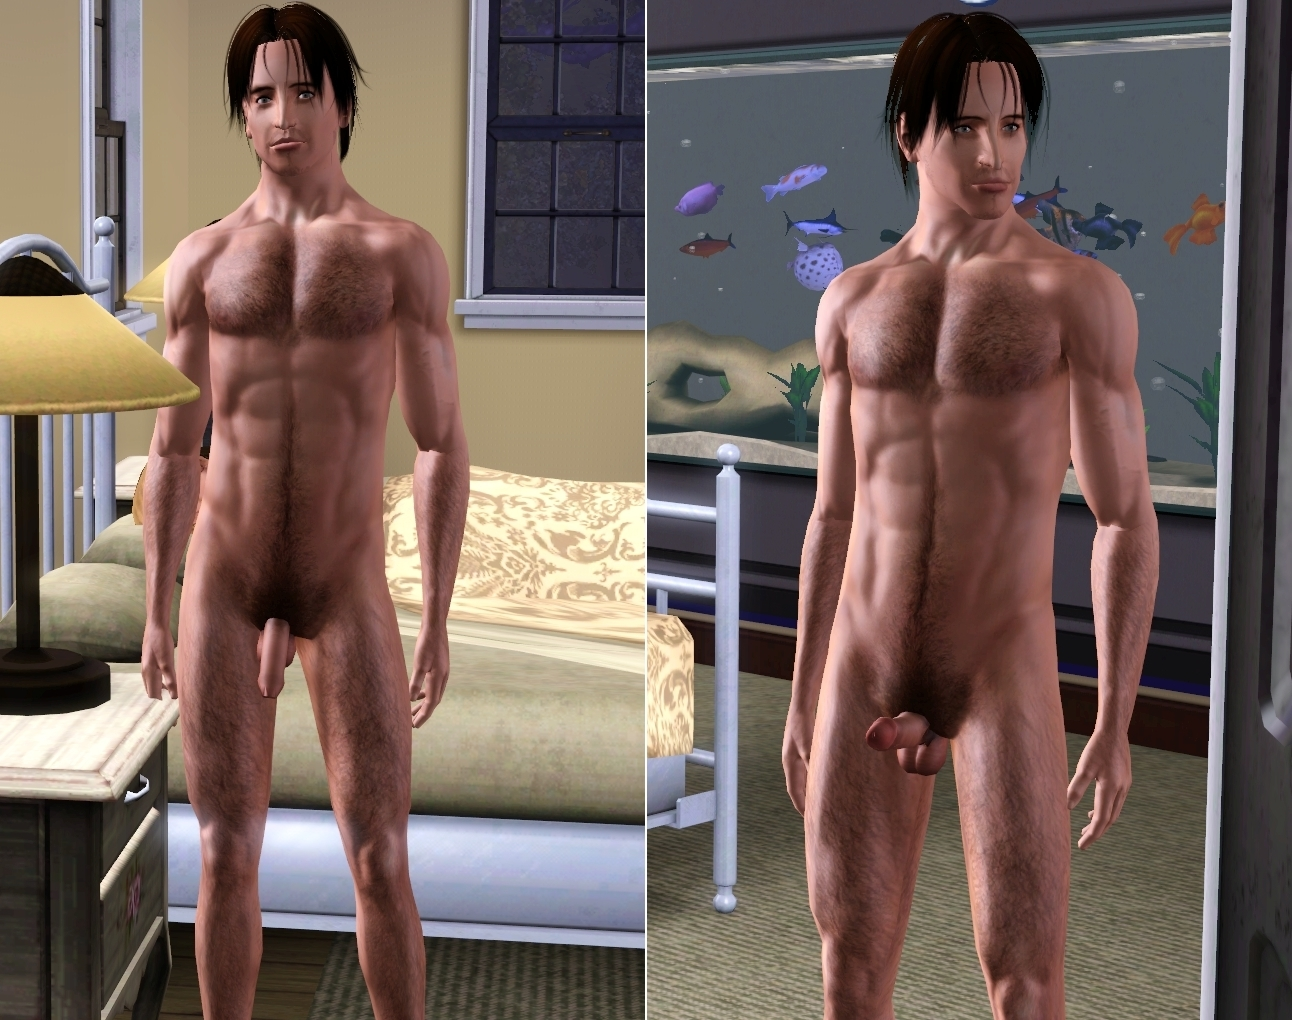 Sims 2 nude patches and cheats nude gallery